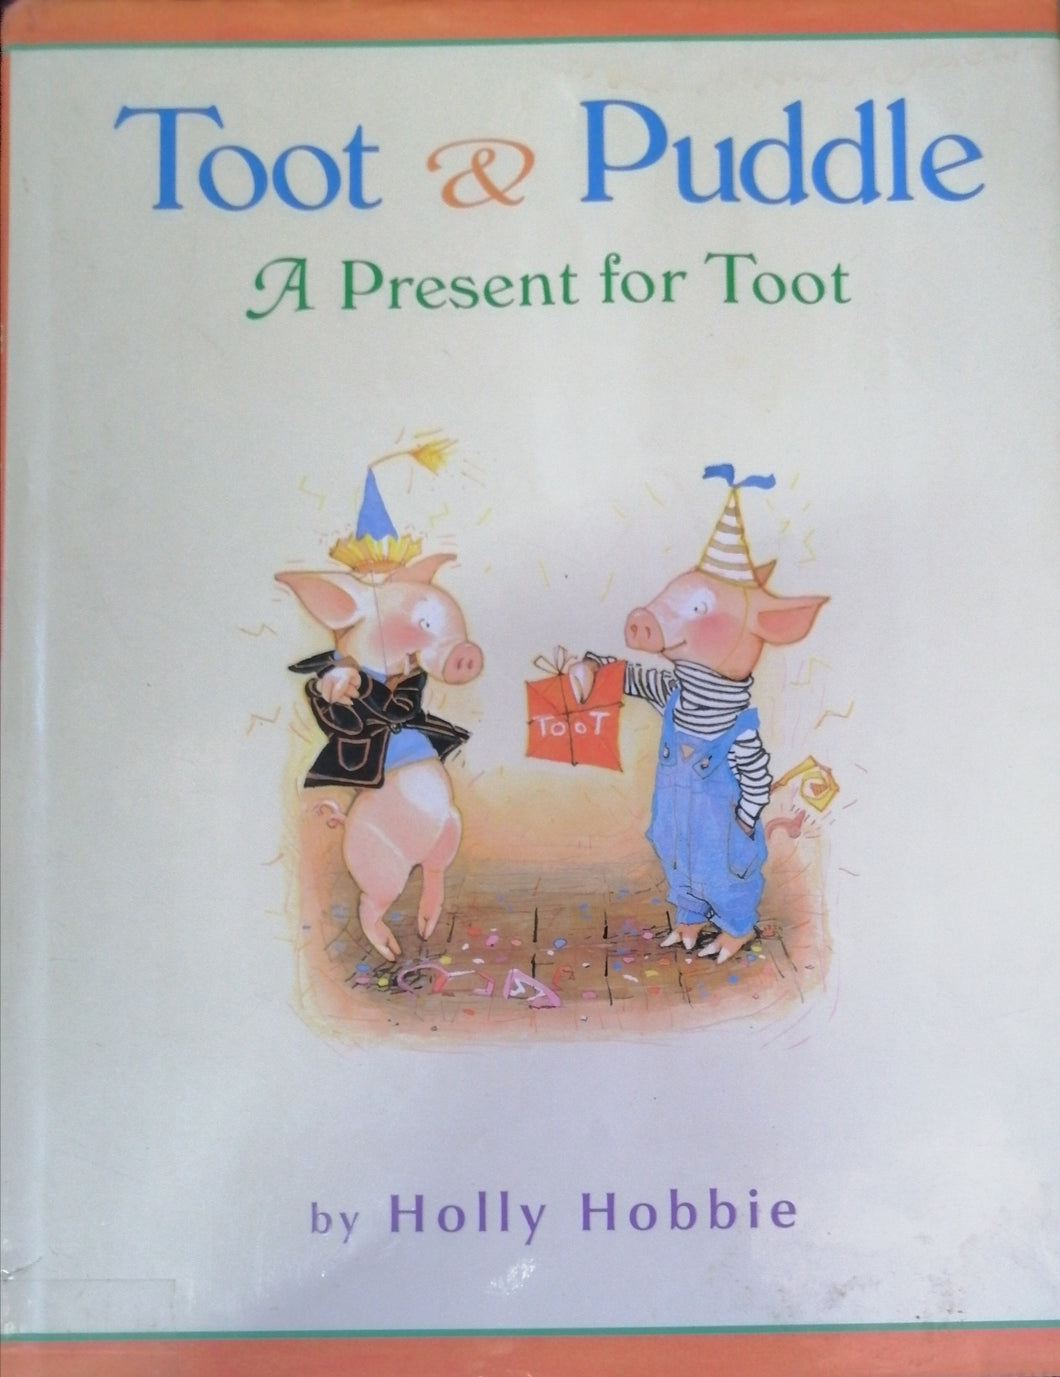 Toot & Puddle A present for toor by Holly Hobbie